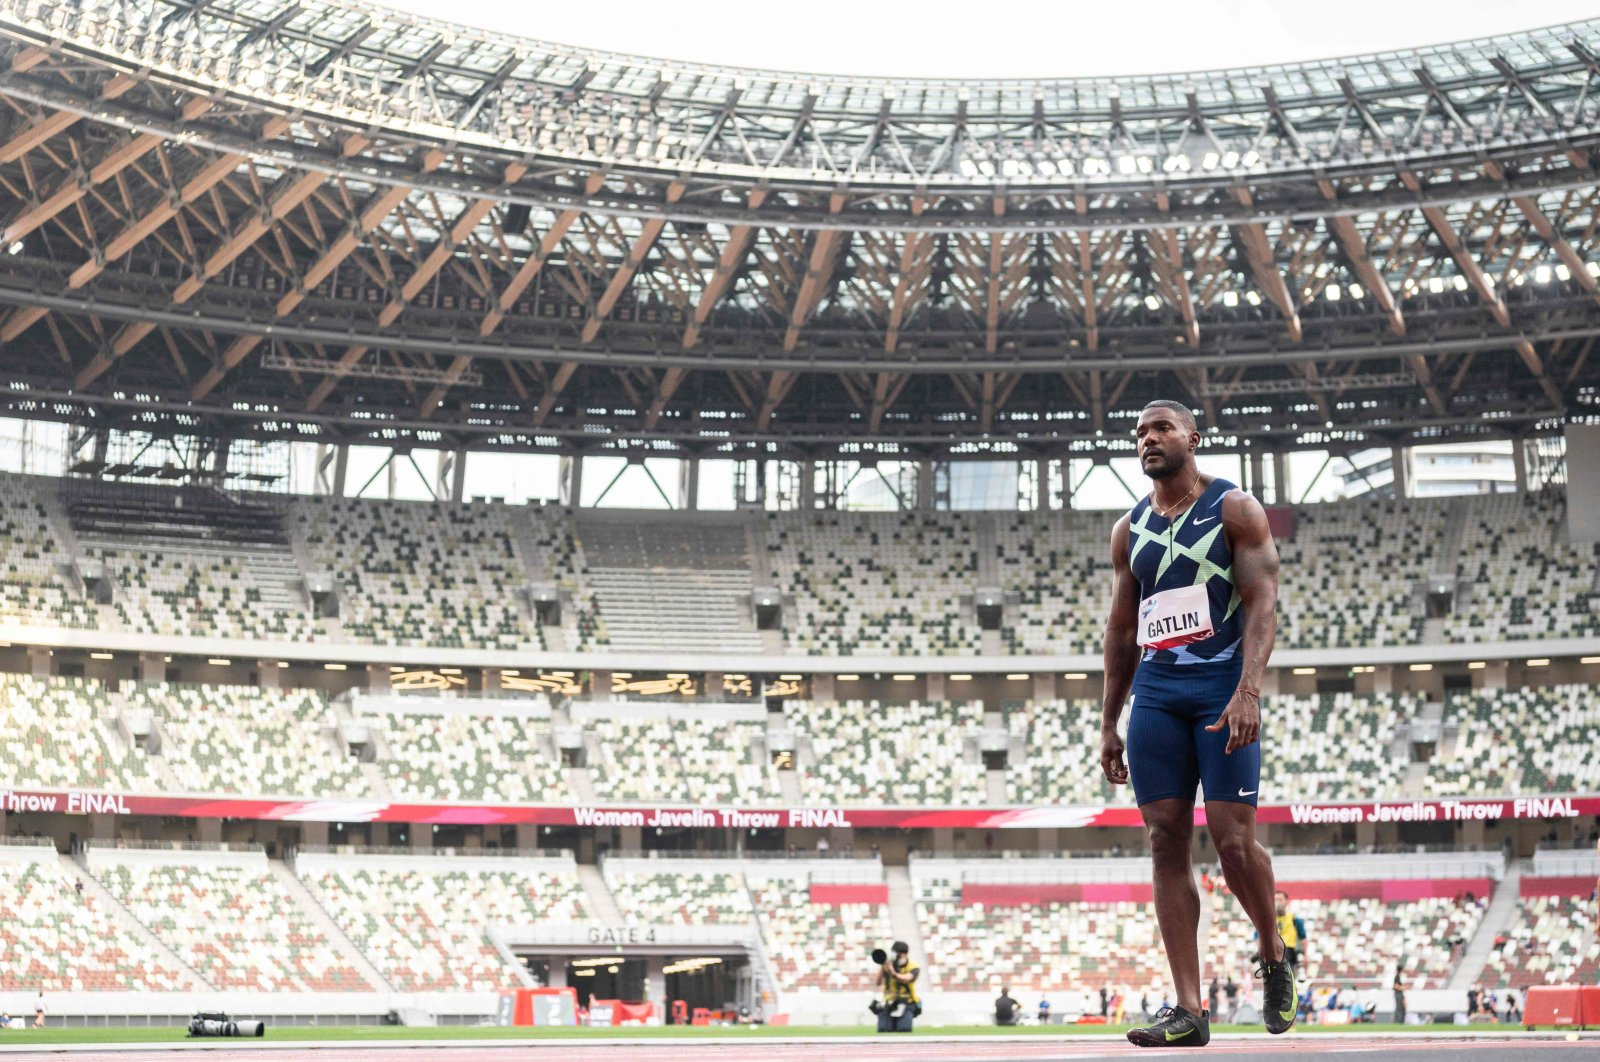 U.S. athlete Justin Gatlin prepares to compete in a heat of the men's 100-meter during an athletics test event for the 2020 Tokyo Olympics at the National Stadium, Tokyo, Japan, May 9, 2021. (AFP Photo)